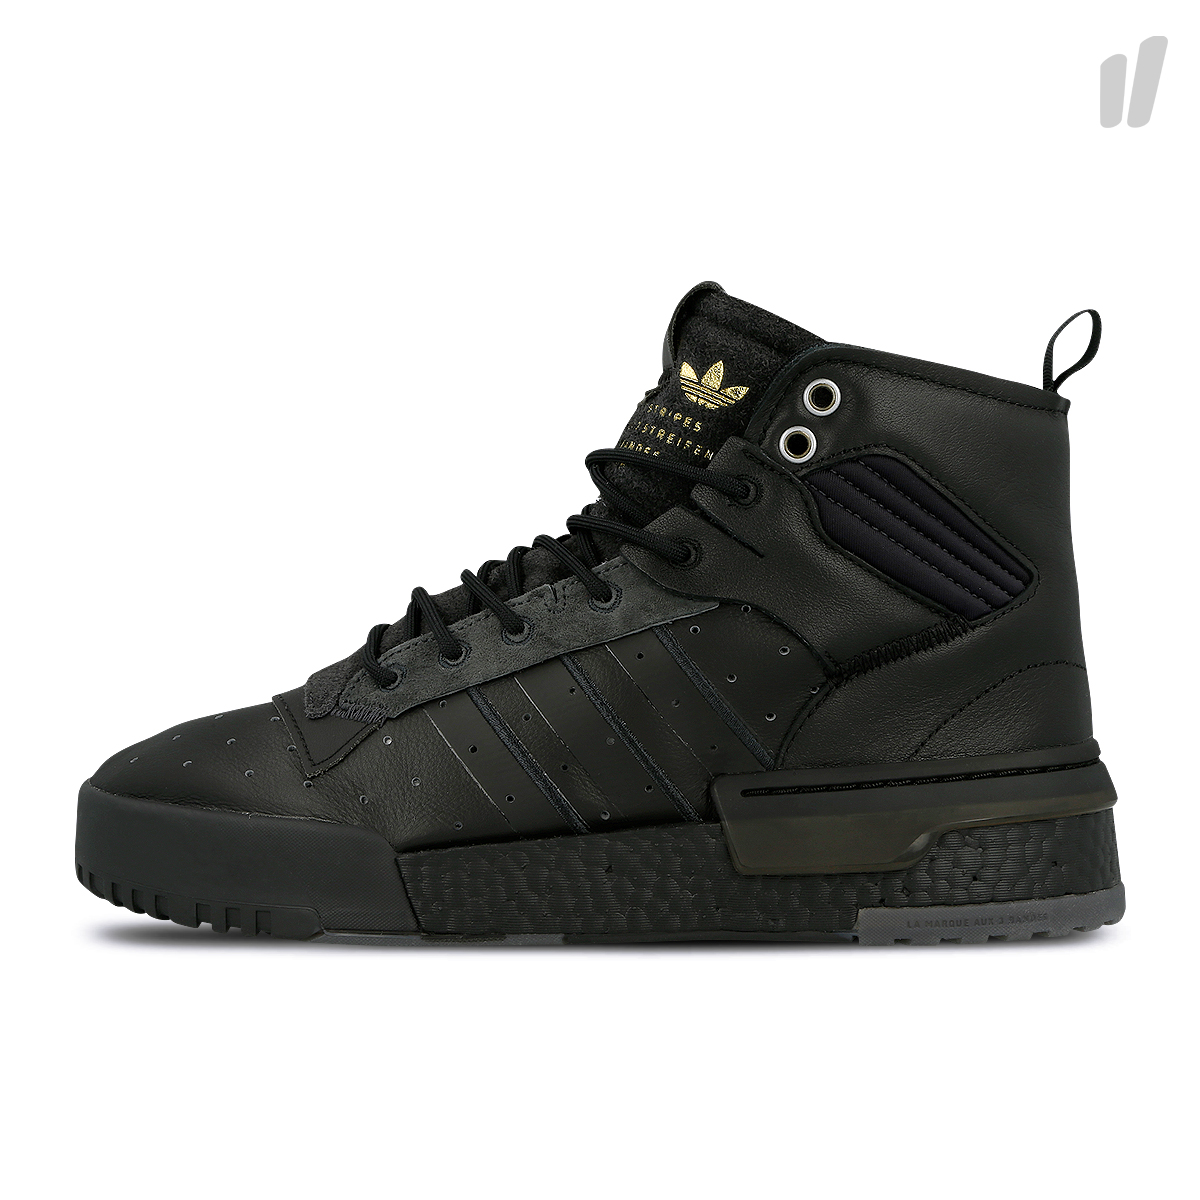 sale retailer 63339 90caf Rivalry ( AH2455 ) RM Adidas nsoggv5014-Sneaker